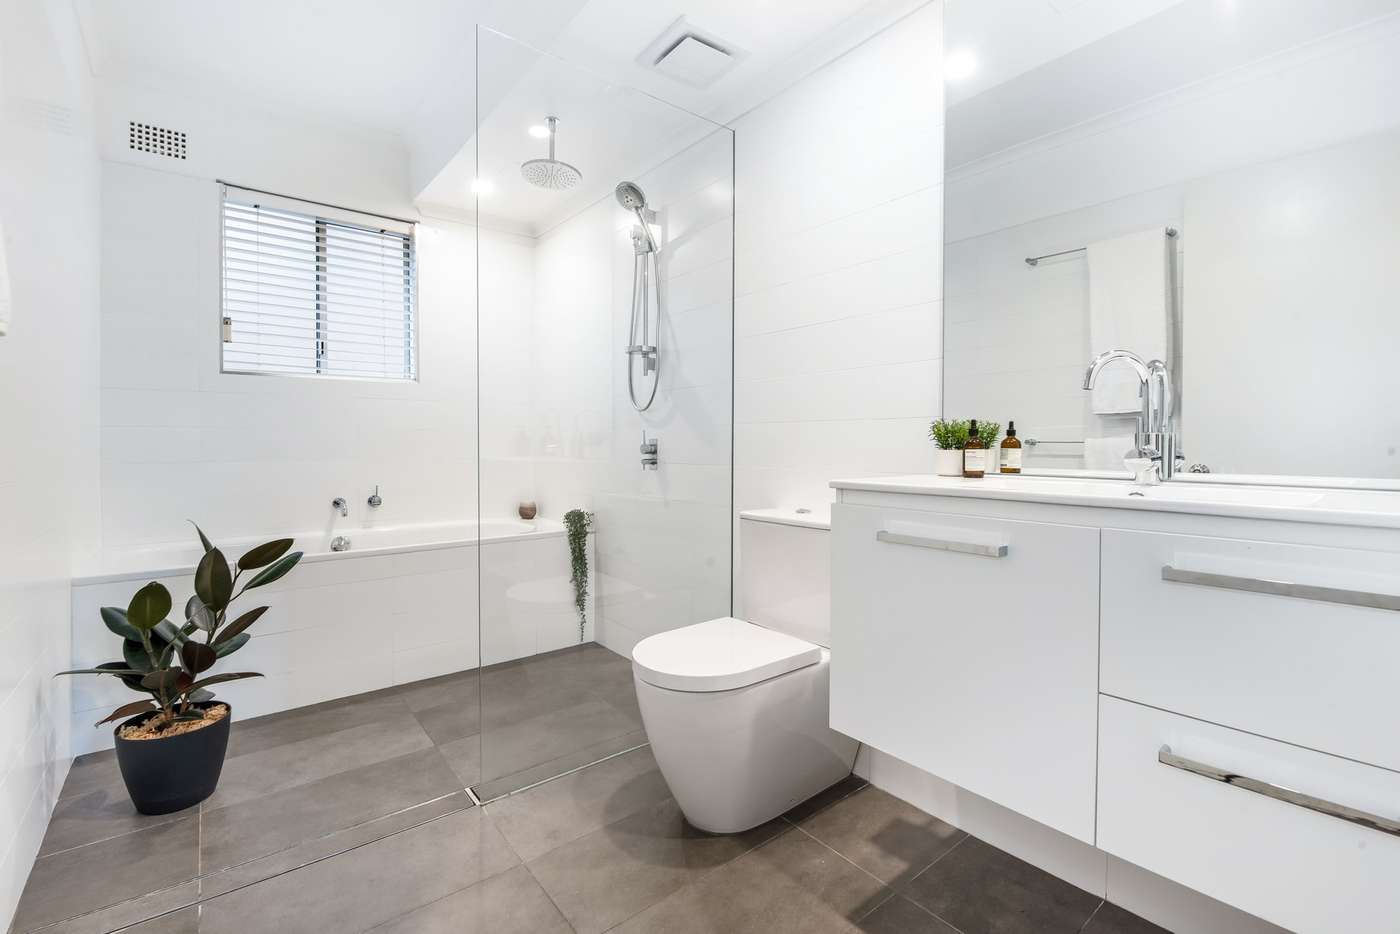 Fifth view of Homely apartment listing, 7/183-187 Hampden Road, Wareemba NSW 2046